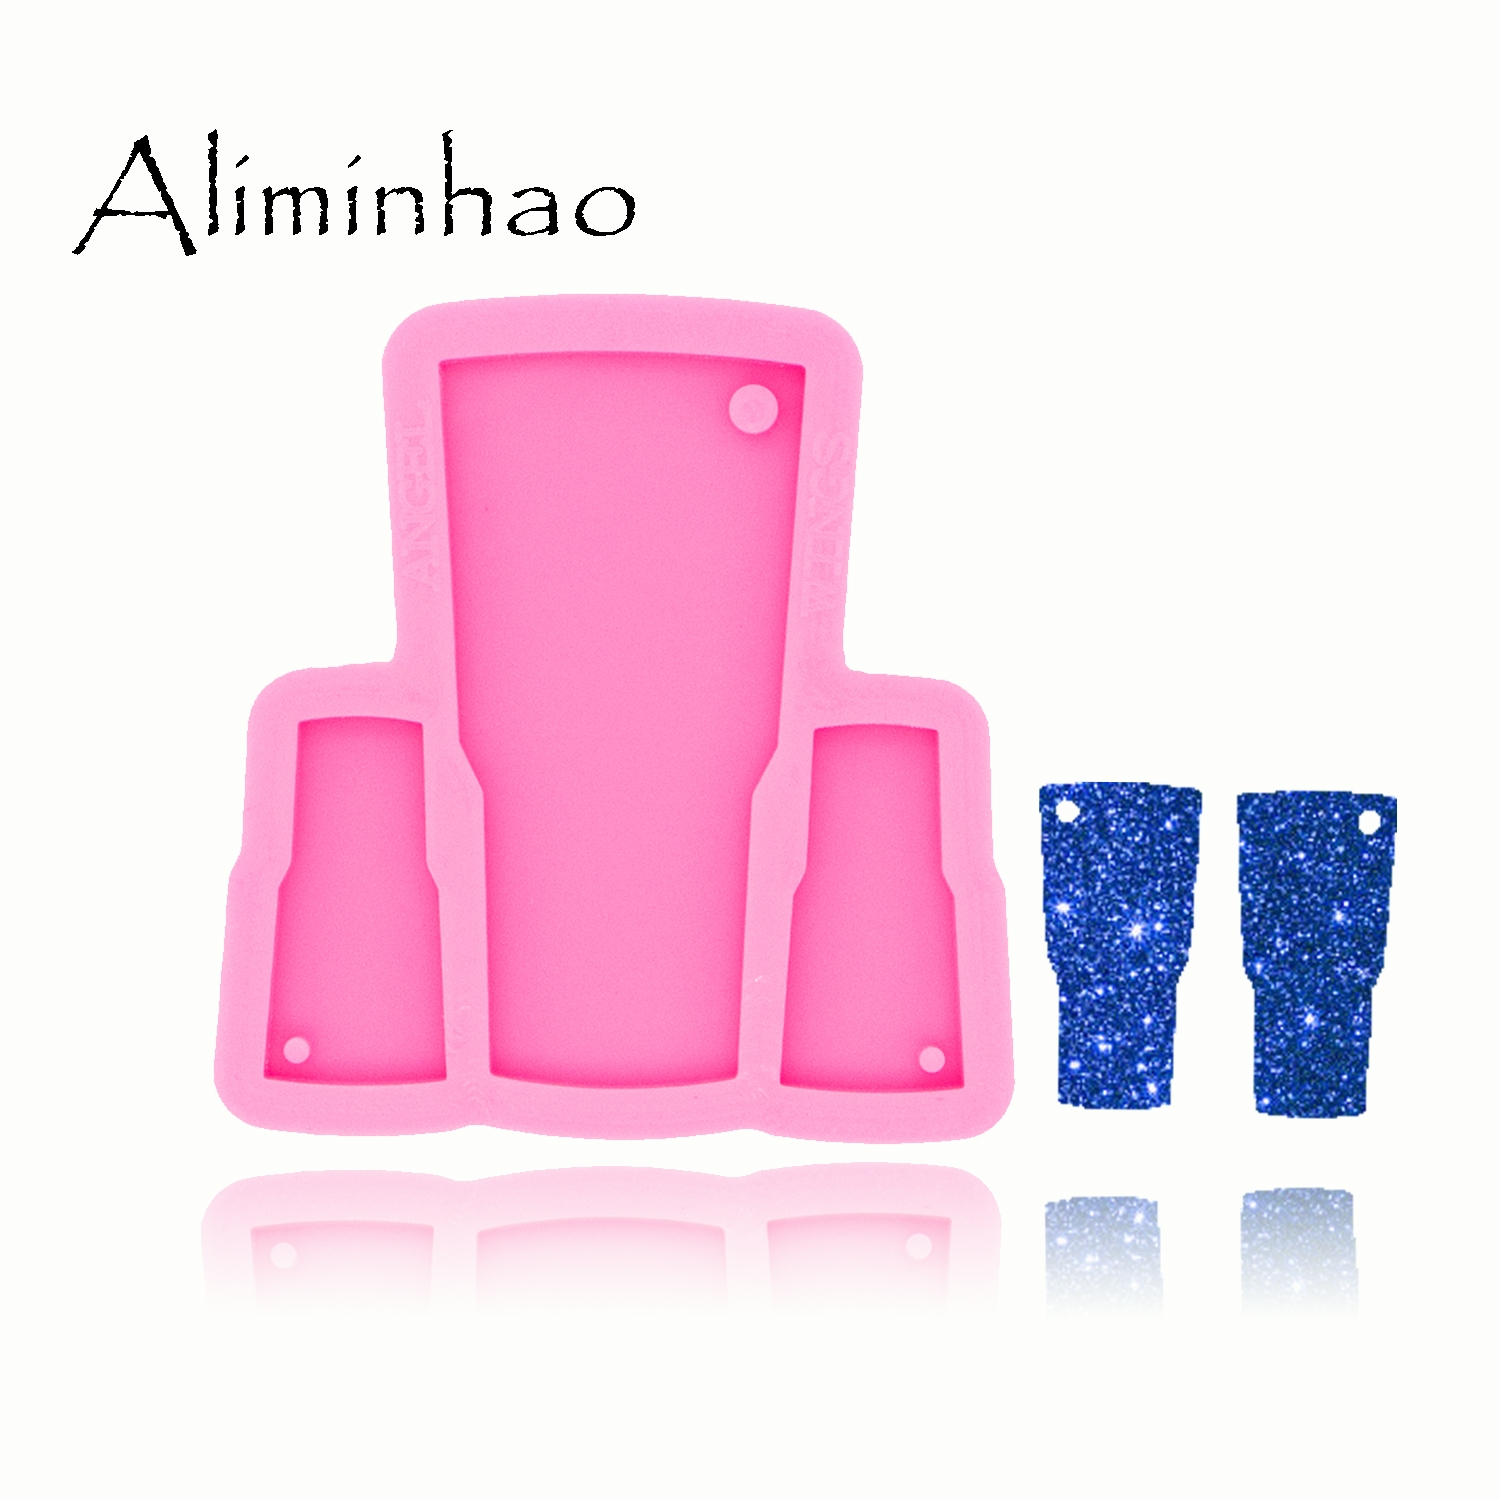 DY0457 Shiny Tumbler Mold Earrings And Necklace Handmade DIY Epoxy Silicone Molds Fashion Jewelry Resin Craft Mould